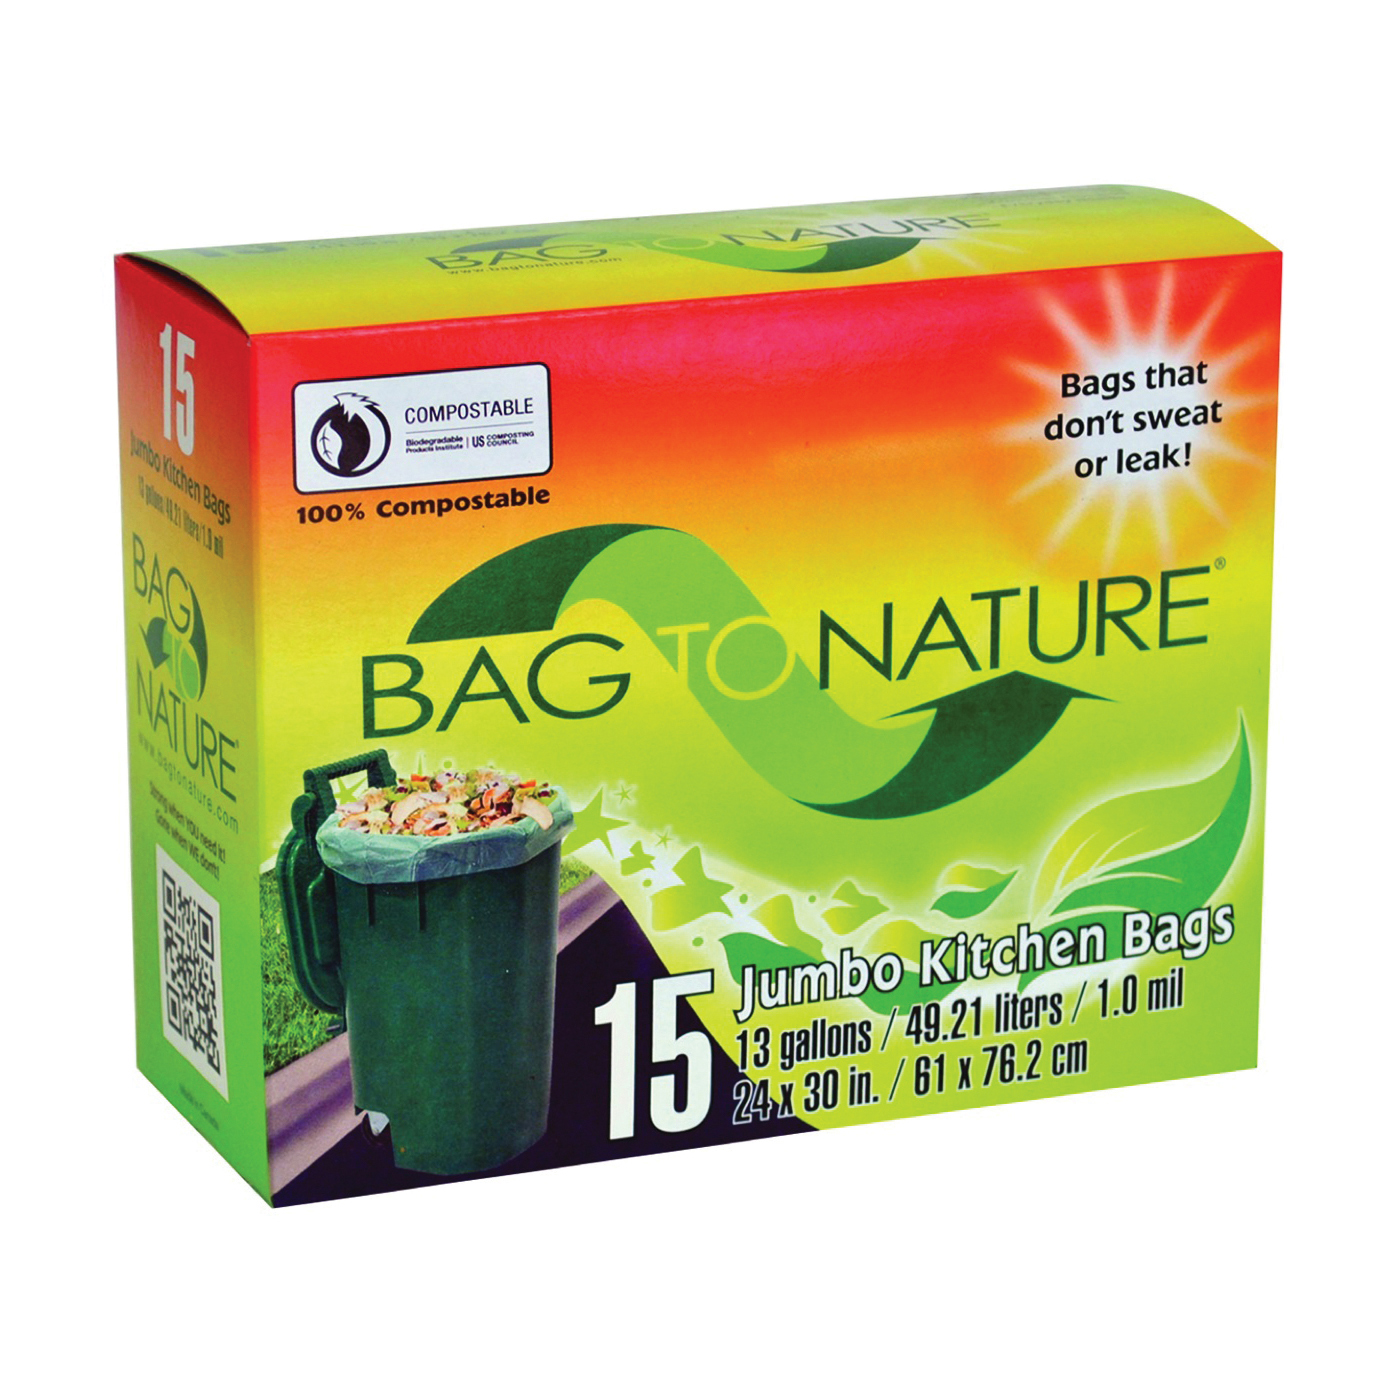 BAG TO NATURE MBP24205